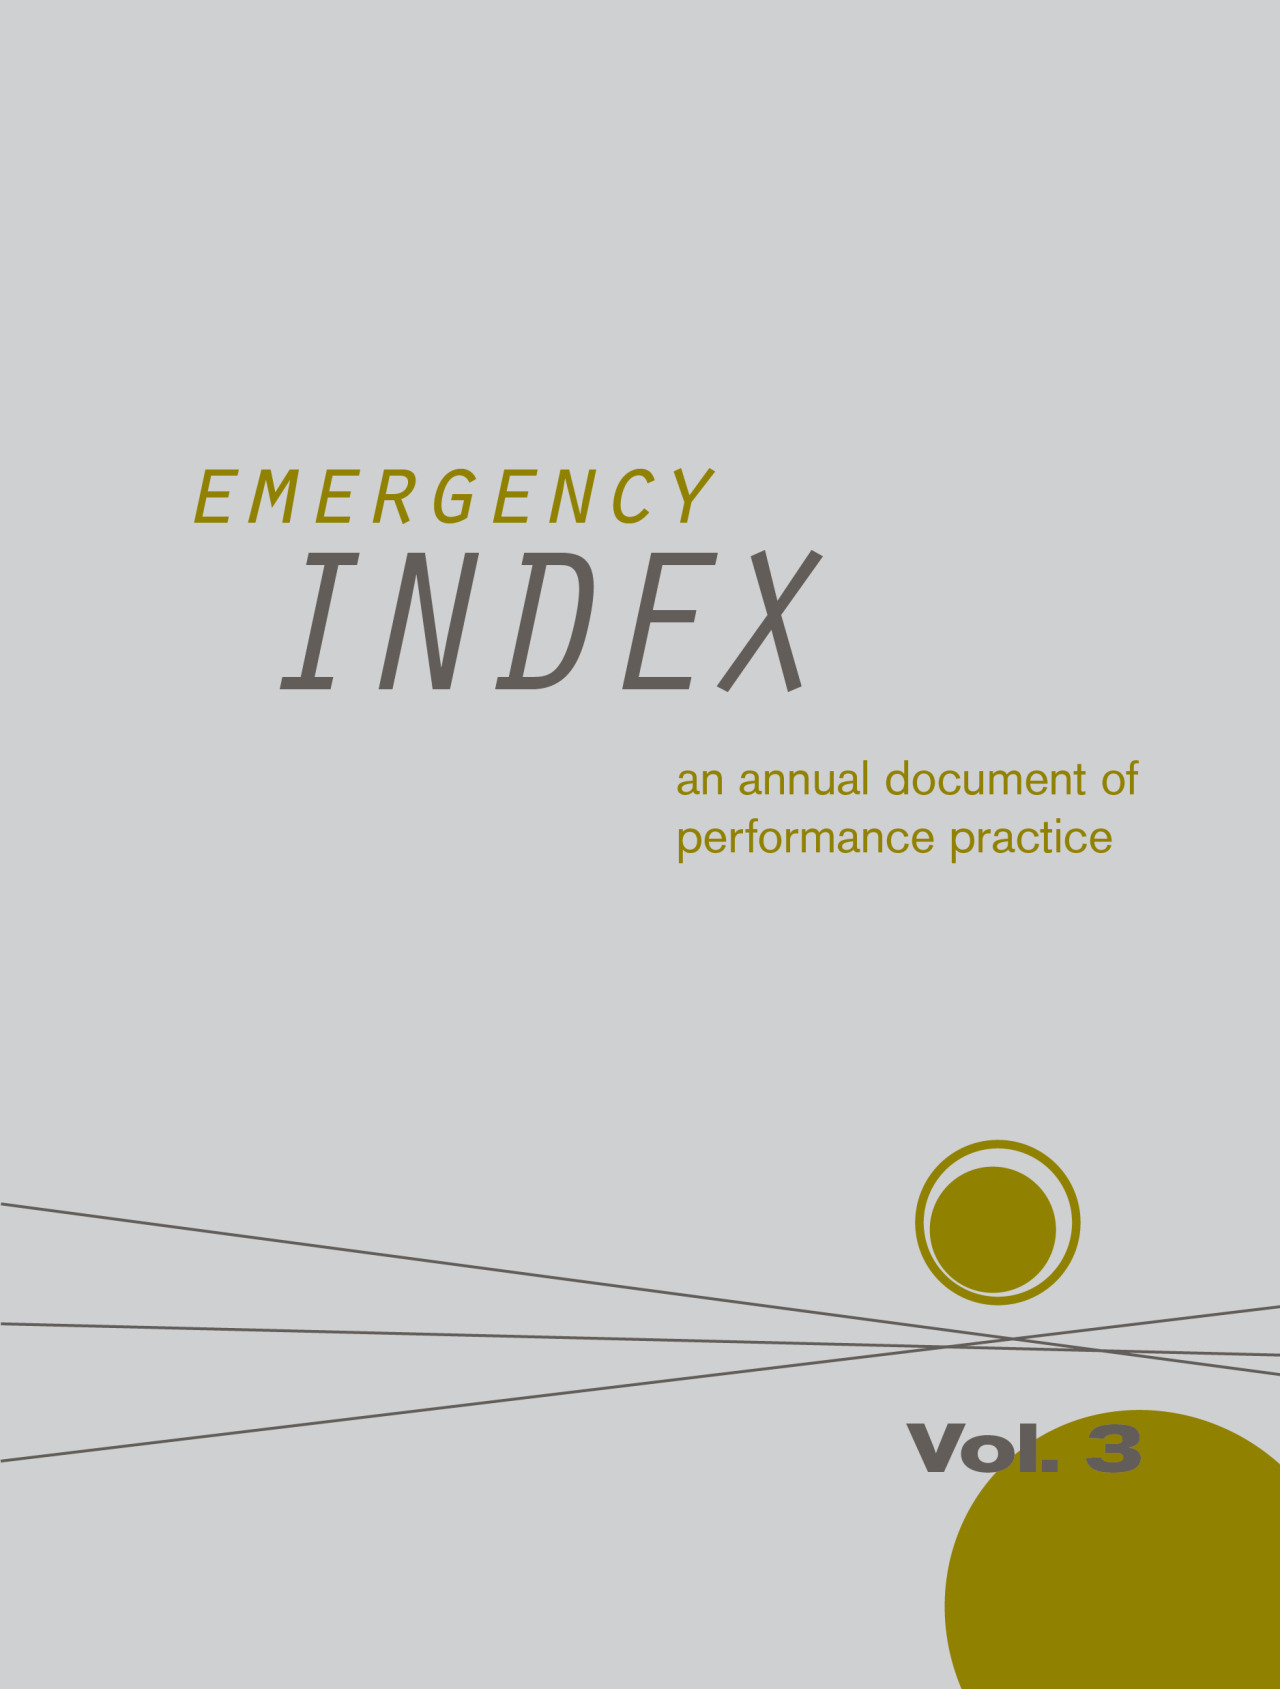 """Quinn Dukes  (MFA AP15) contributed to  """"EMERGENCY INDEX: AN ANNUAL DOCUMENT OF PERFORMANCE PRACTICE, VOL. 3""""  which documents performative work within the past year. Check out her work as well as performance artists from around the world."""